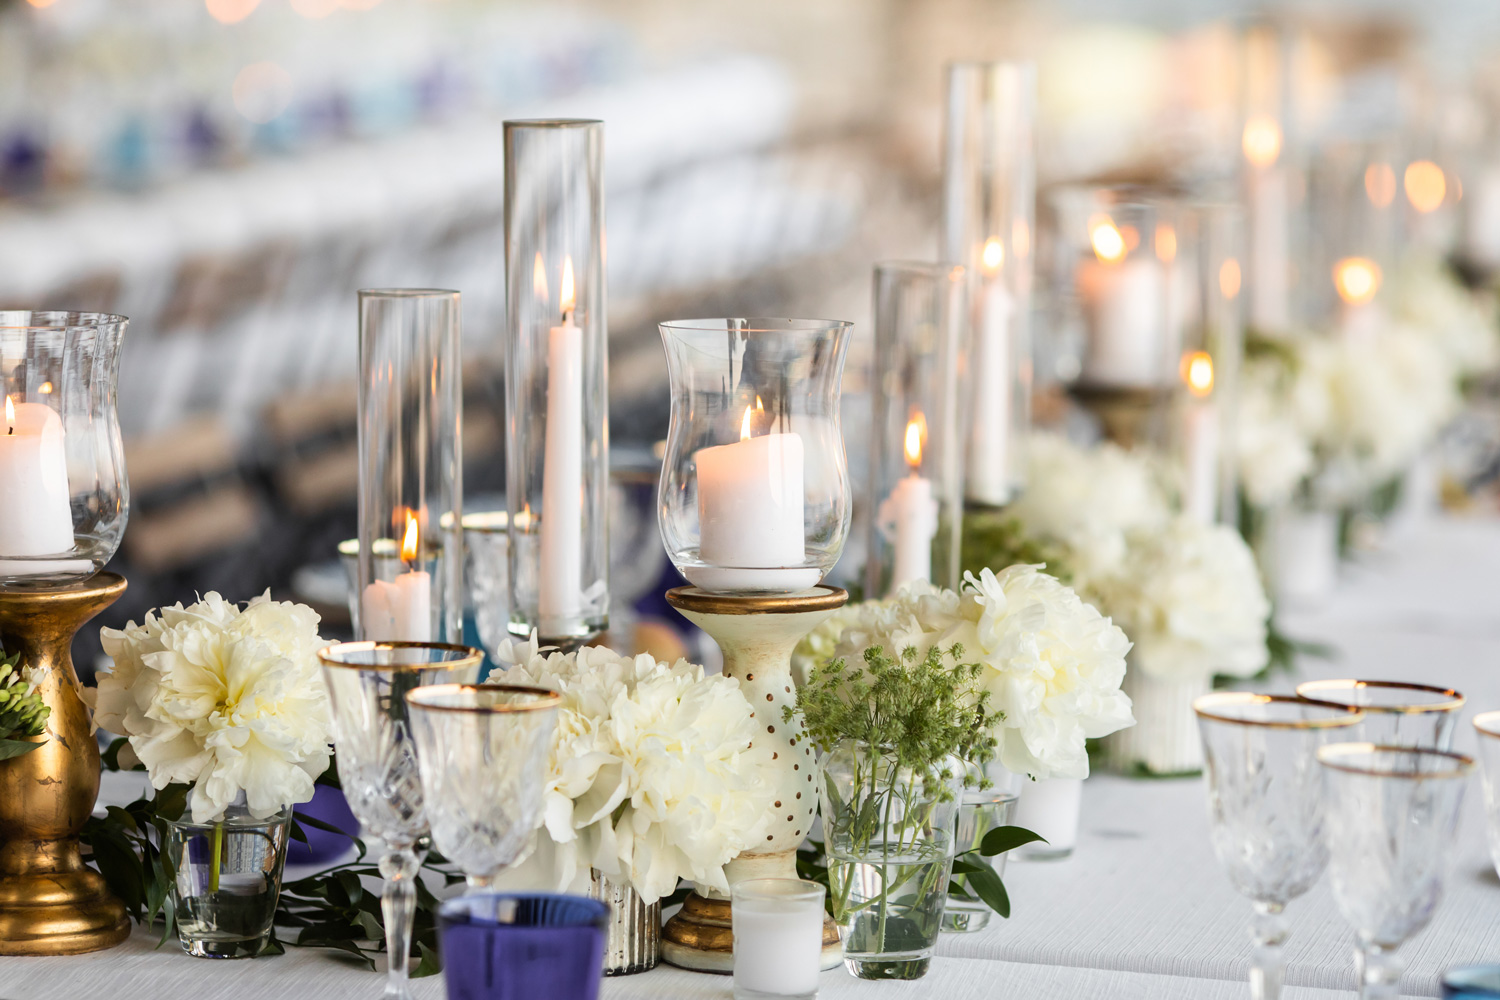 Using candles as decoration can make your wedding even more romantic. Get the perfect romantic lighting for your wedding with our range of candles.